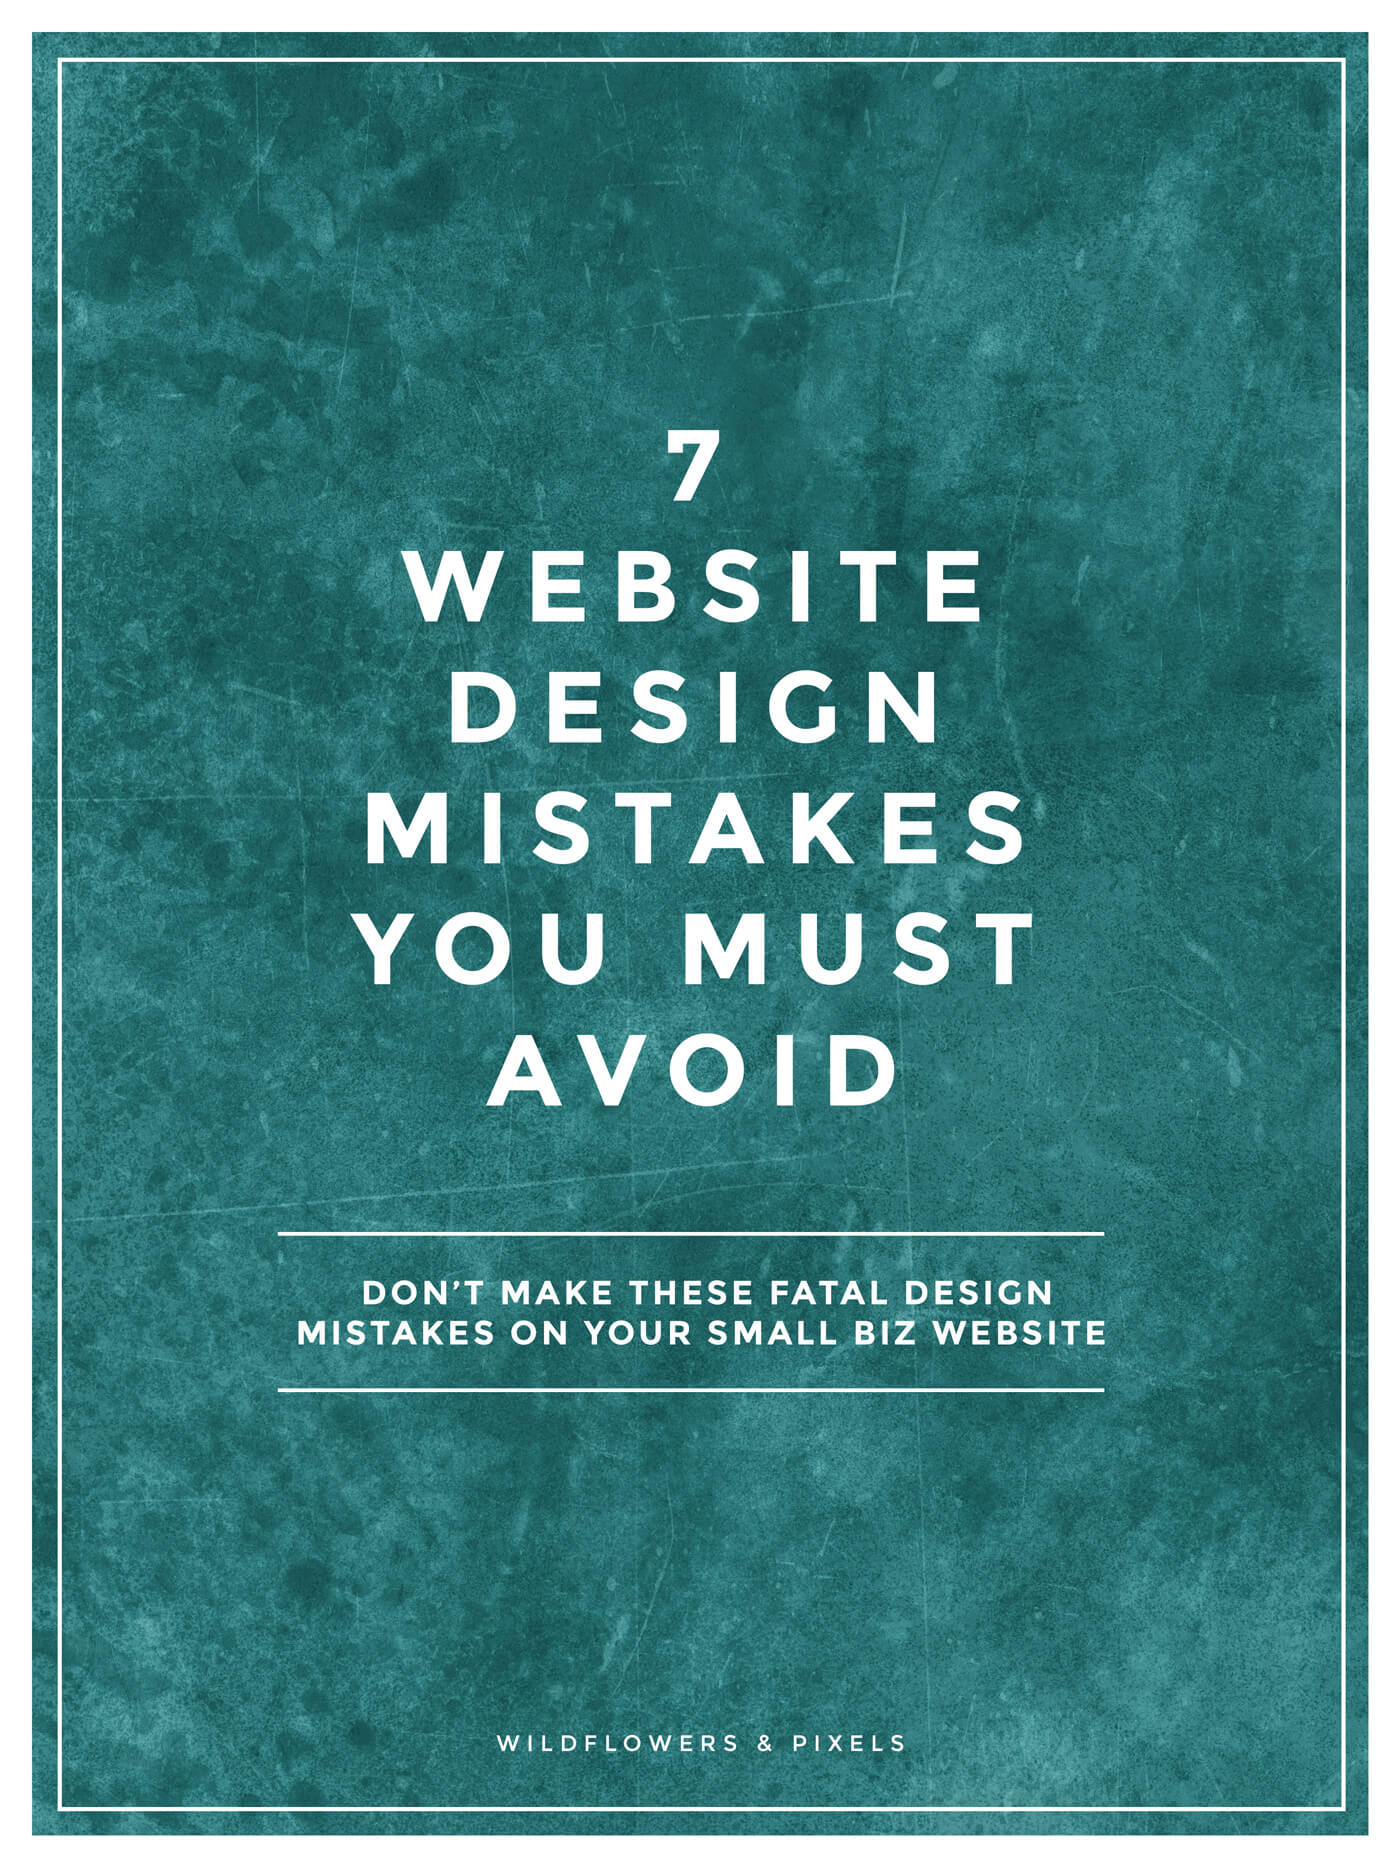 7 Design Mistakes To Avoid In Your Hall: 7 Website Design Mistakes You Must Avoid